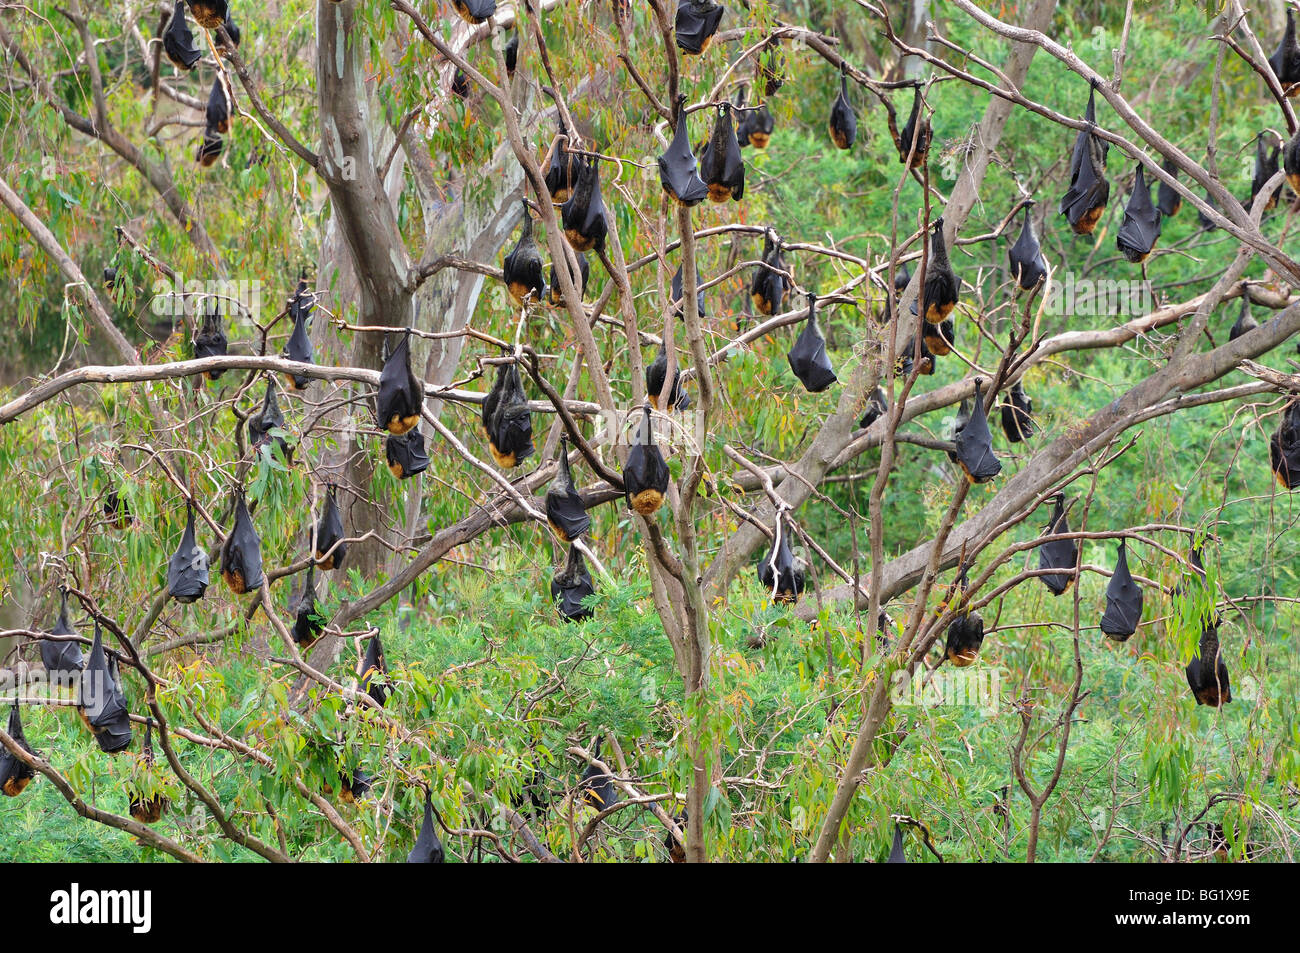 Flying foxes resting in tree, Yarra Bend Park, Melbourne, Victoria, Australia, Pacific - Stock Image